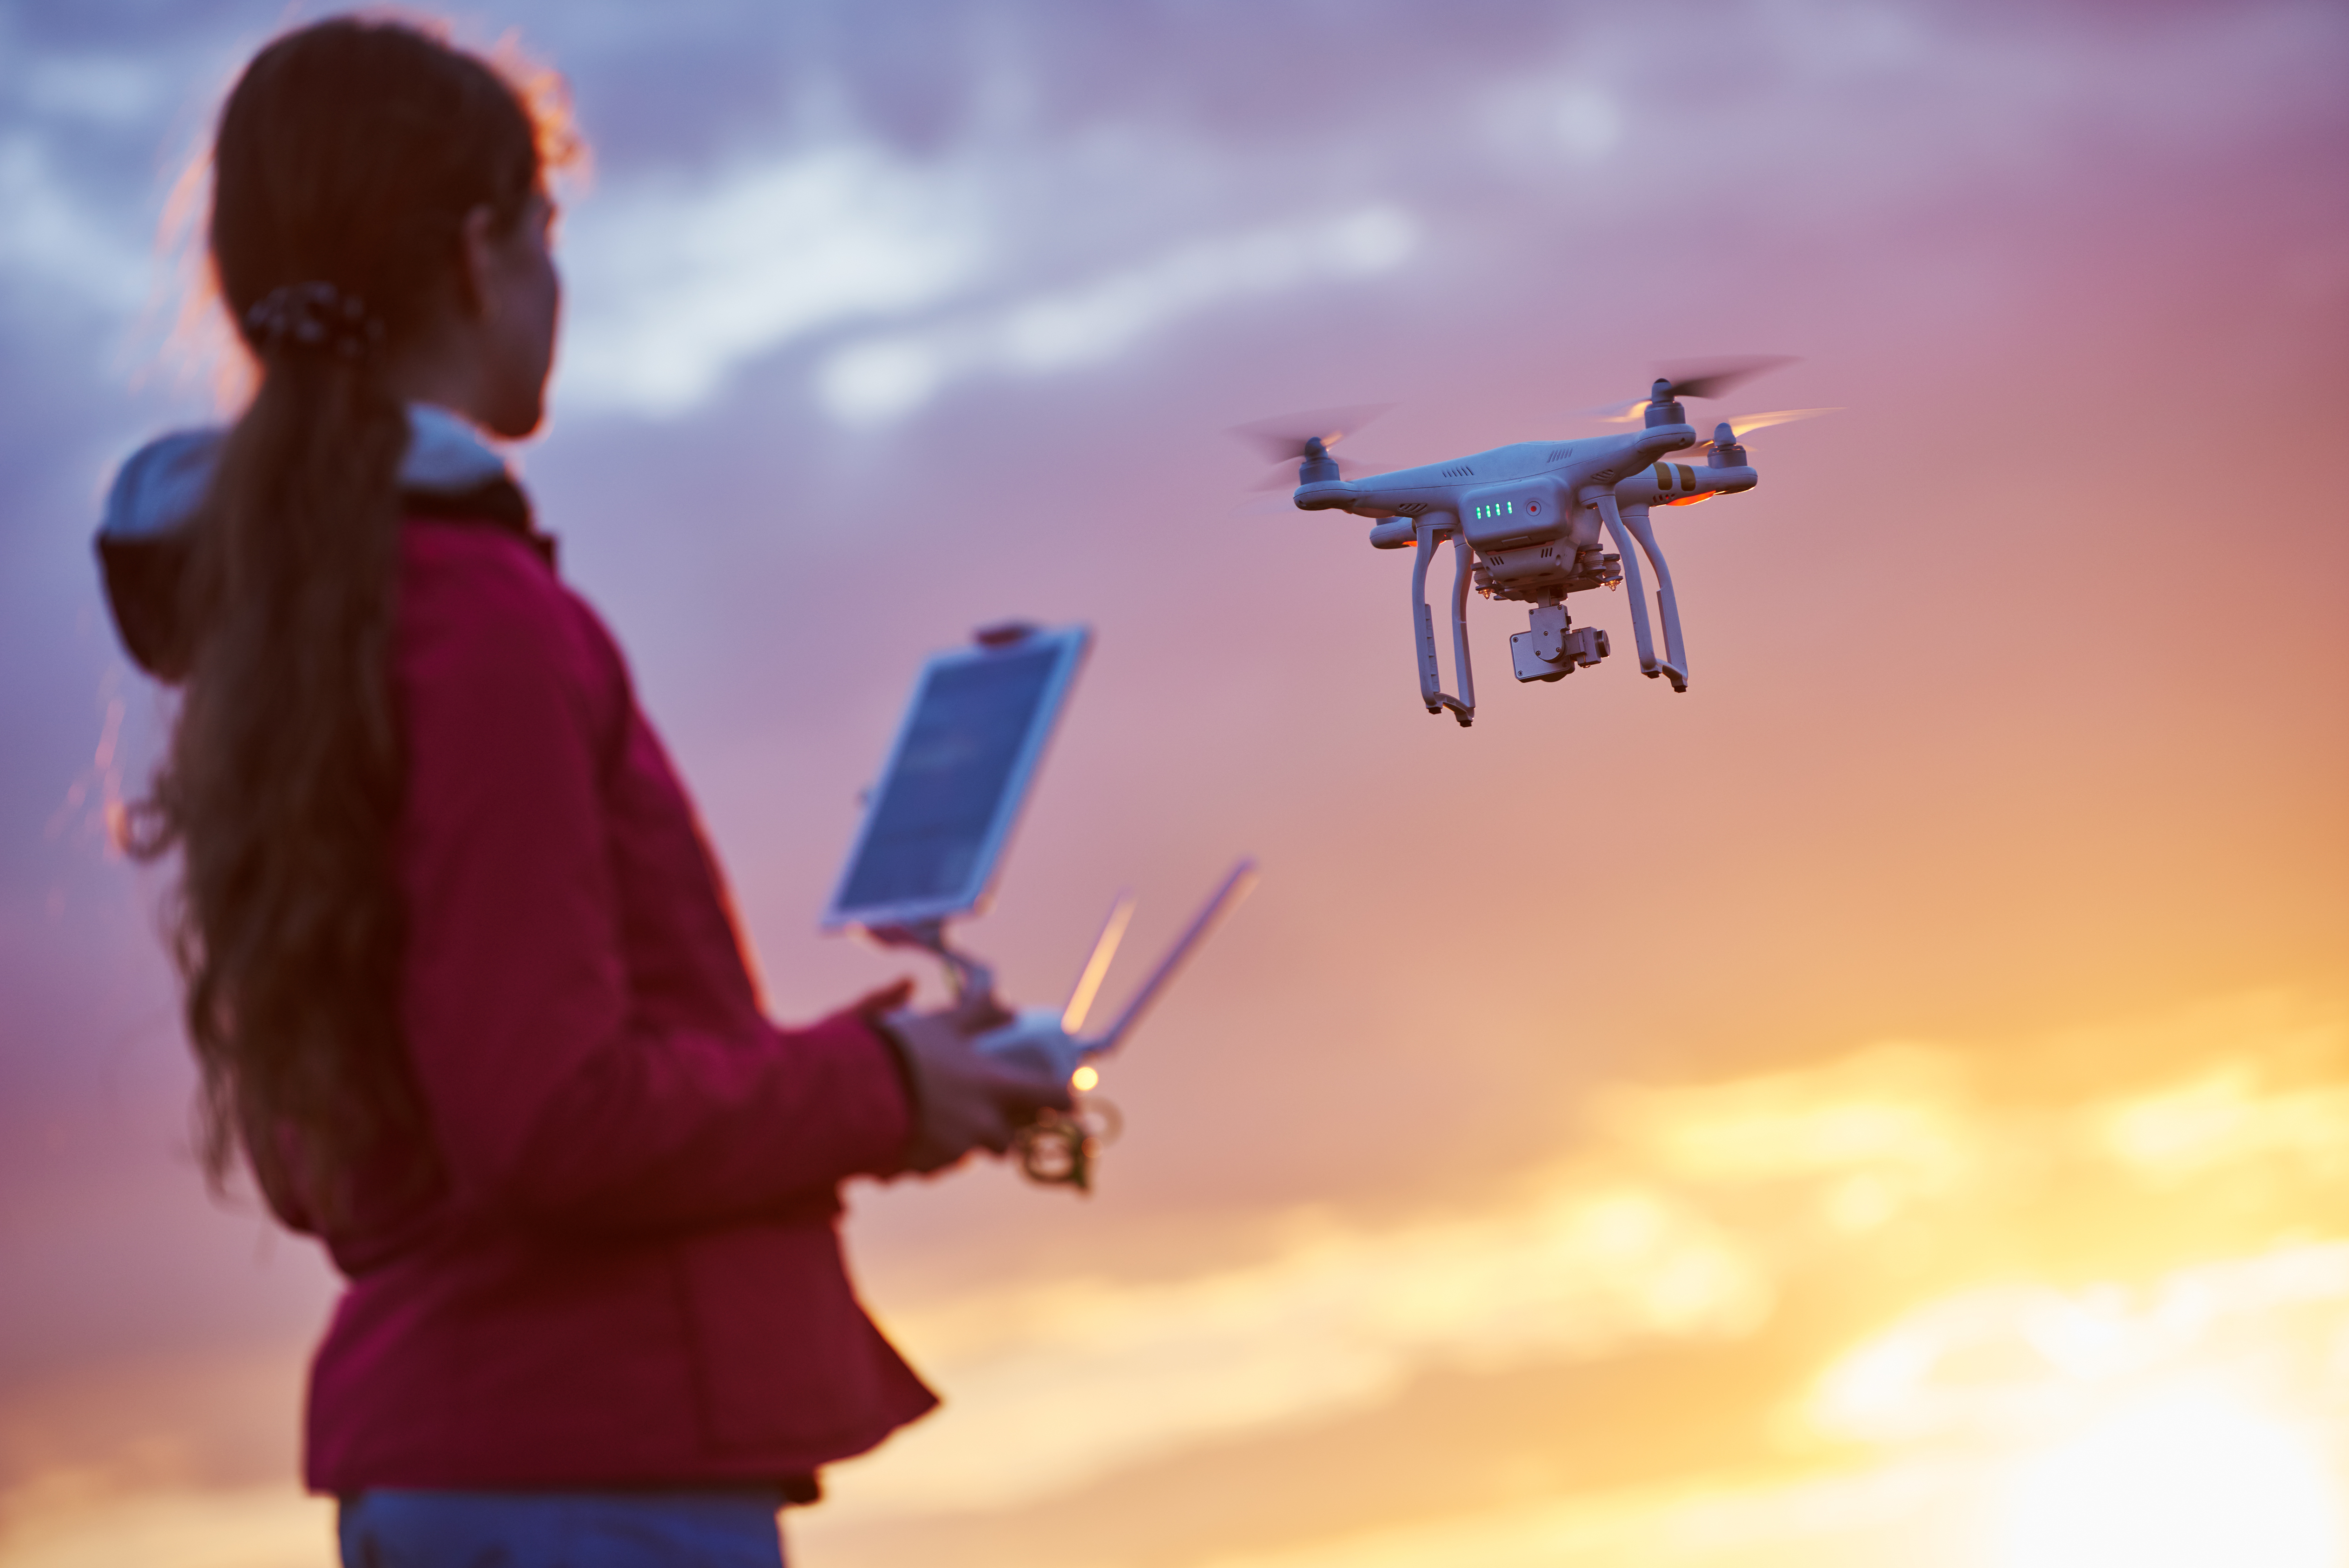 Image - Research by Roehampton academic finds women are under-represented in the drone industry